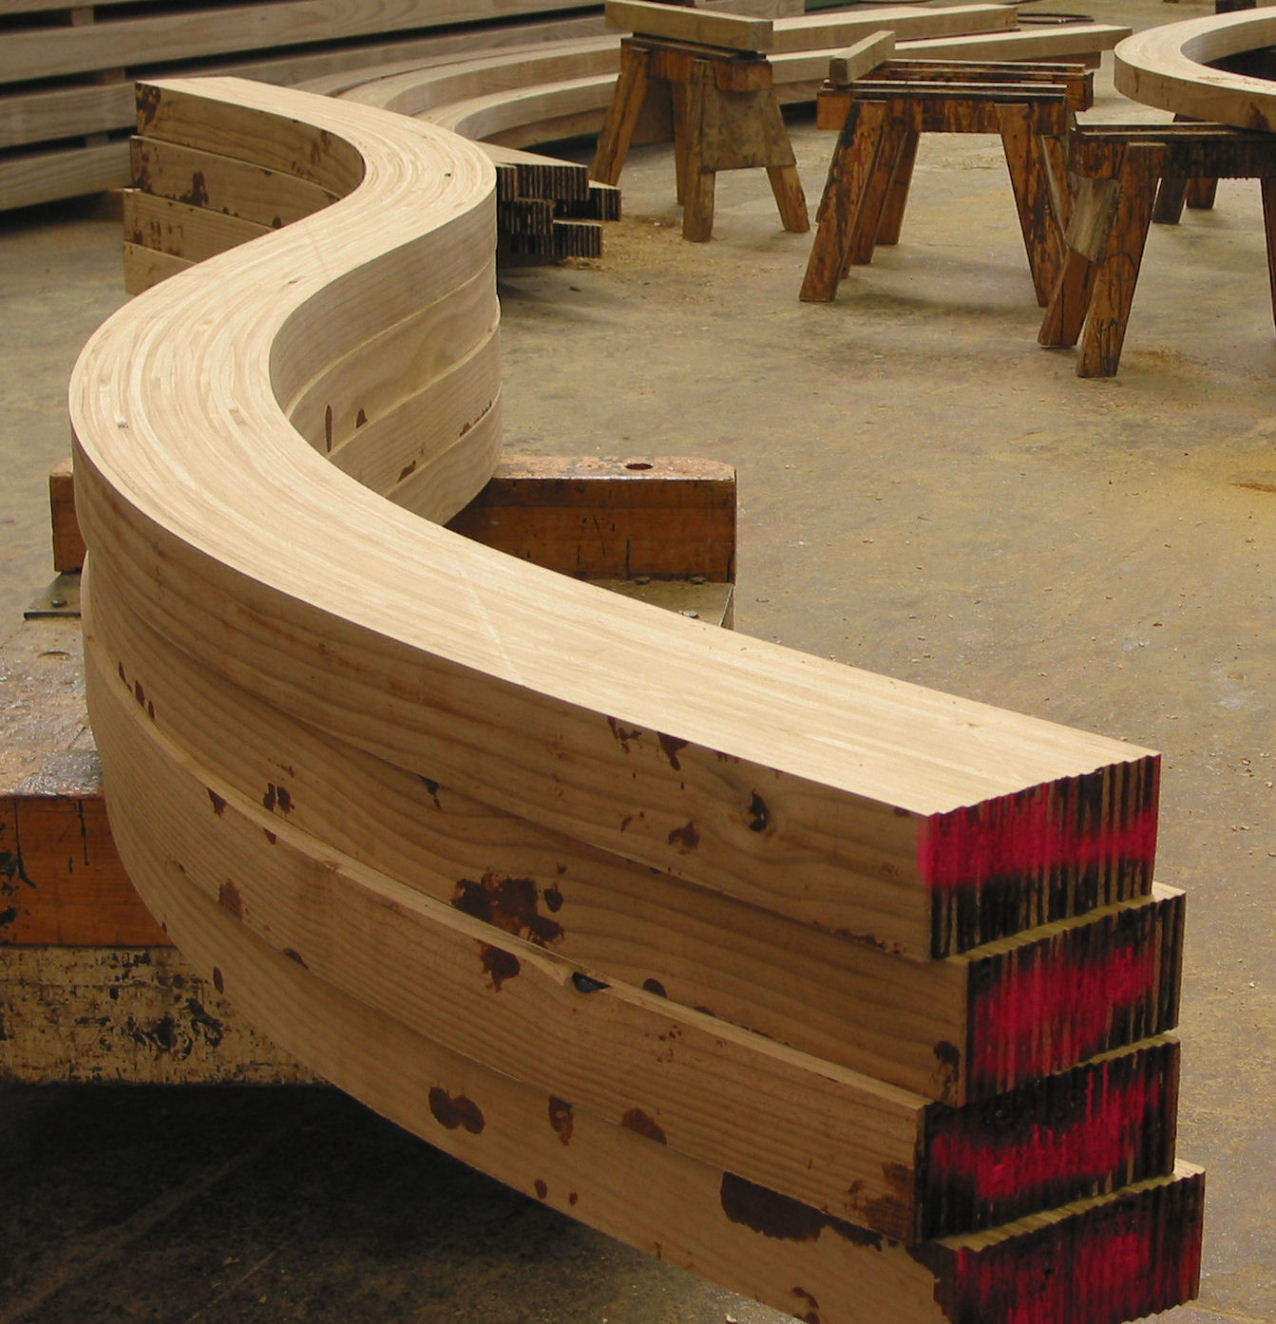 Curved beams and arches timberlab glulam by